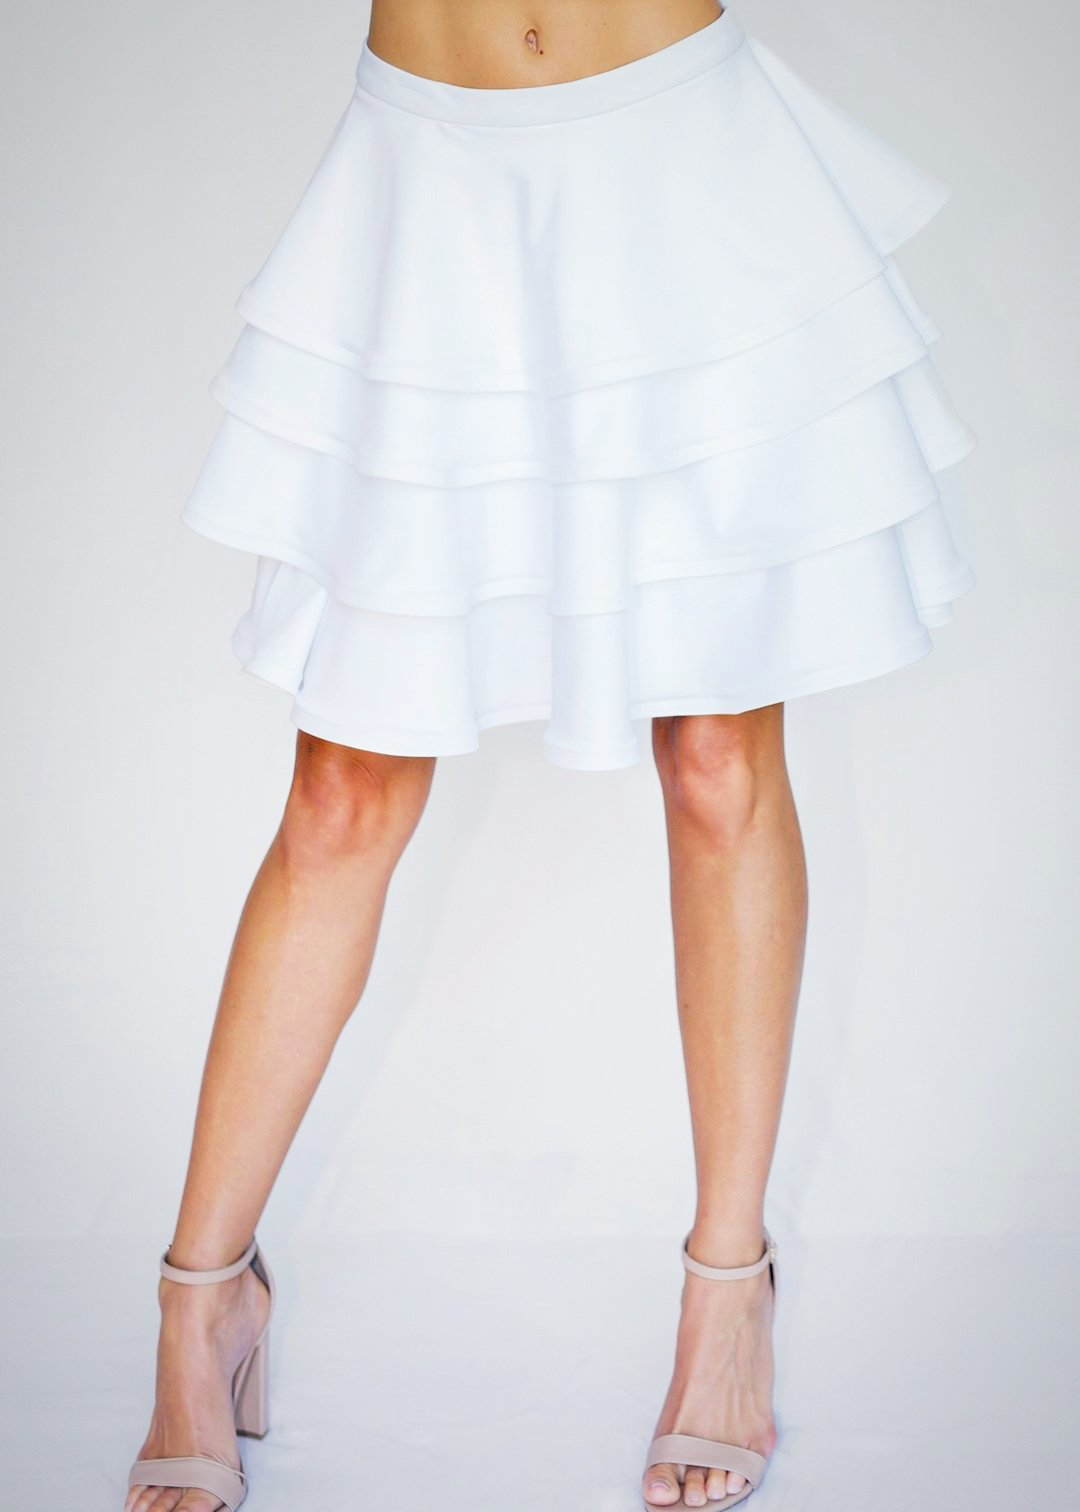 Olgita Skirt White